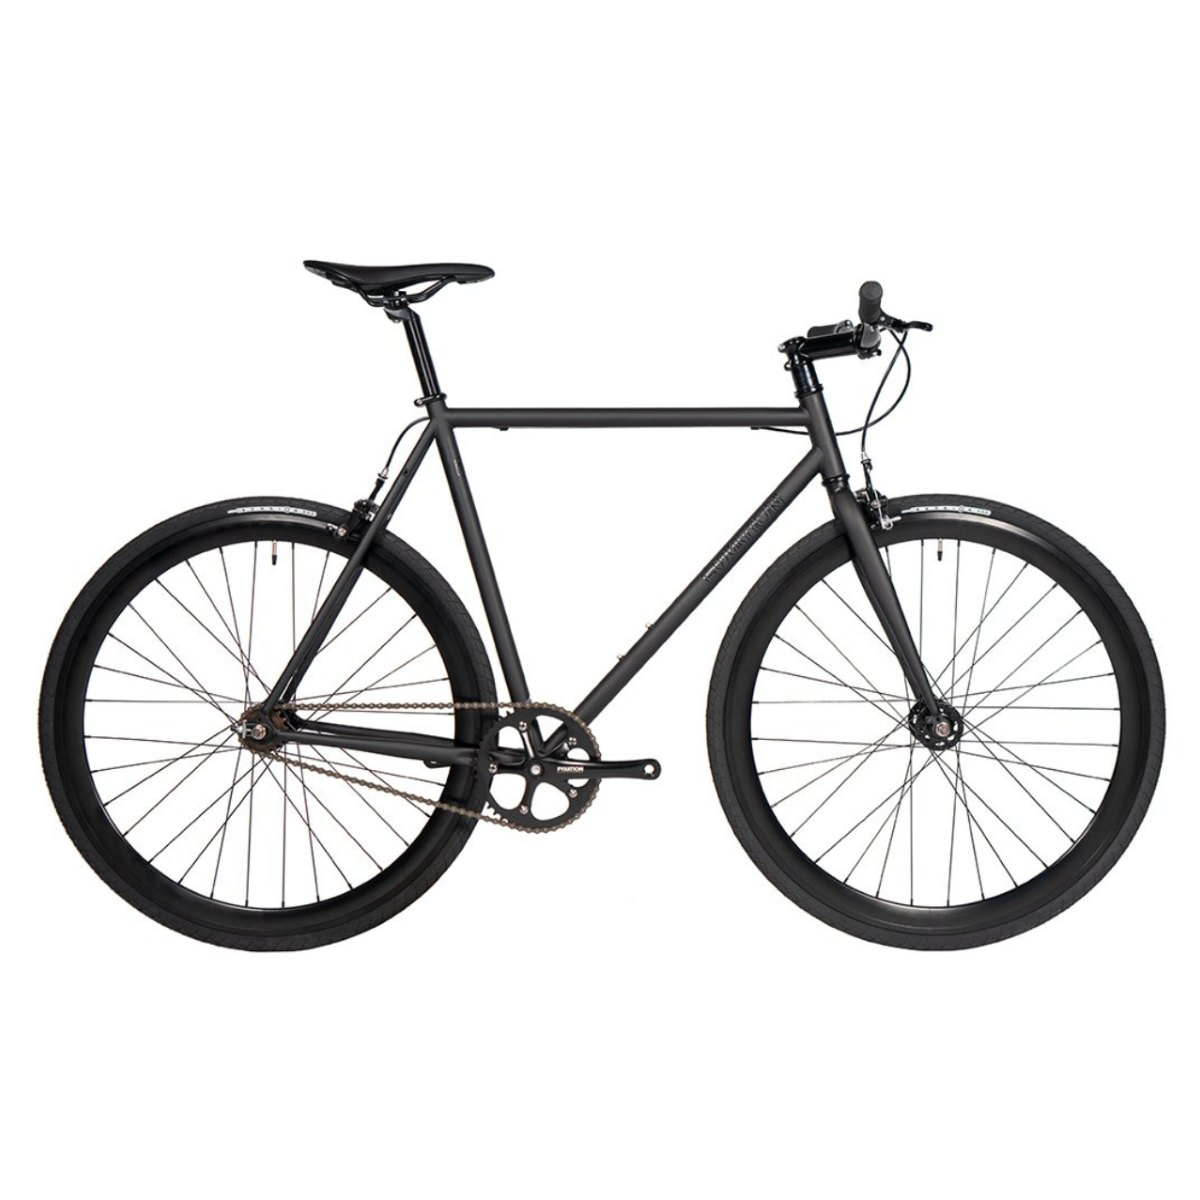 FYXATION EASTSIDE VELO DE VILLE PIGNON FIXE FIXED GEAR MONO-VITESSE